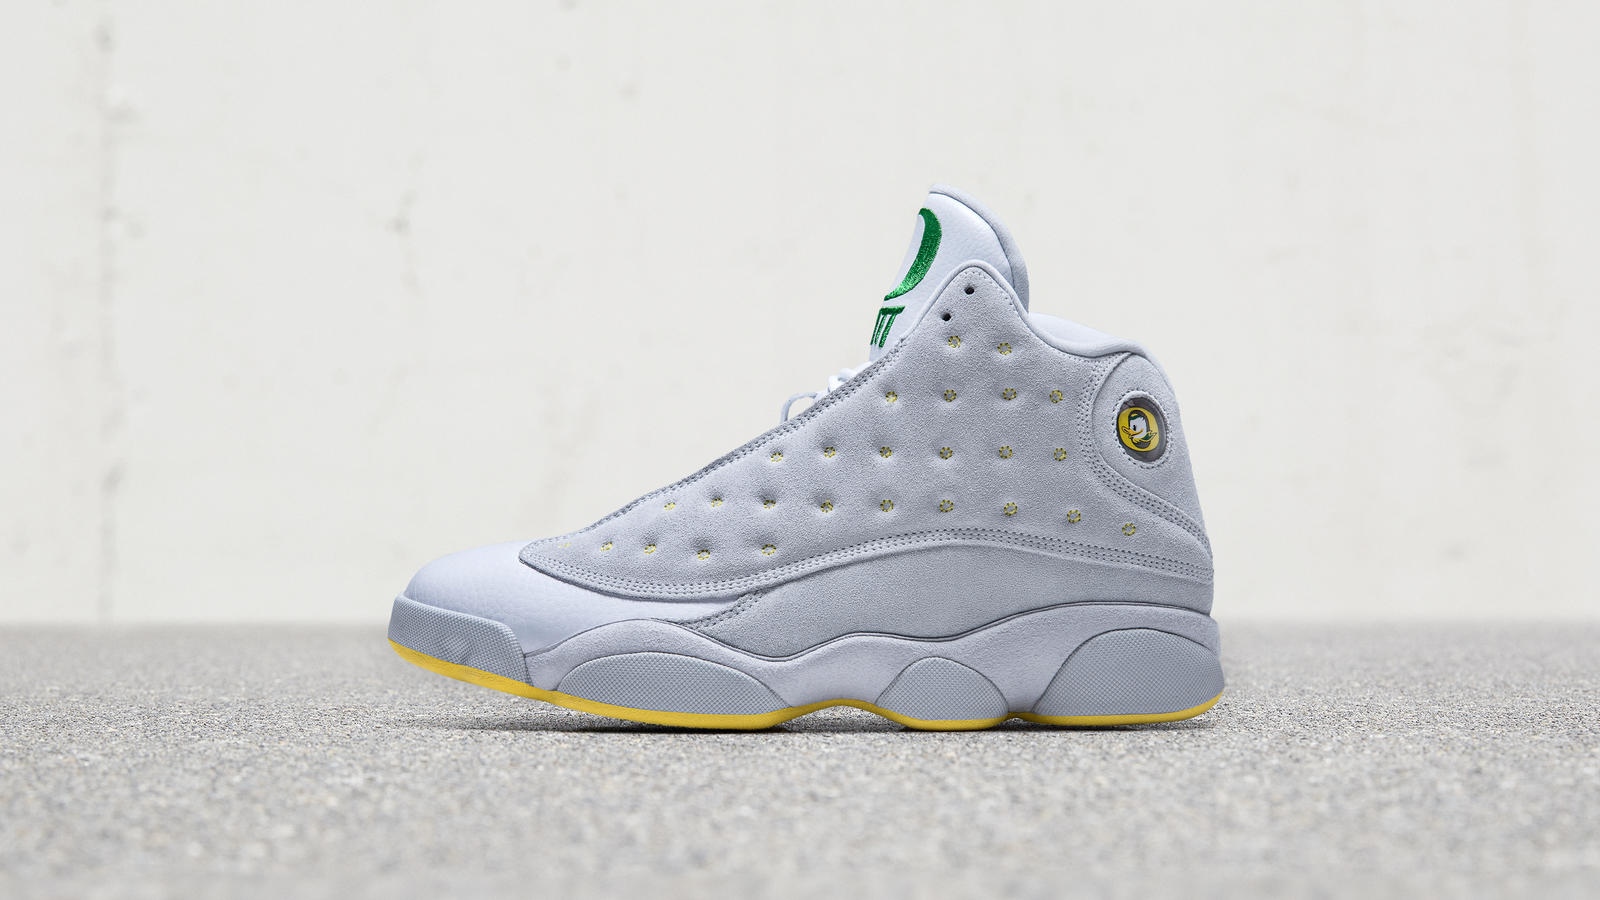 9d4747b3a97972 Jordan 13 University of Oregon Basketball - Nike News